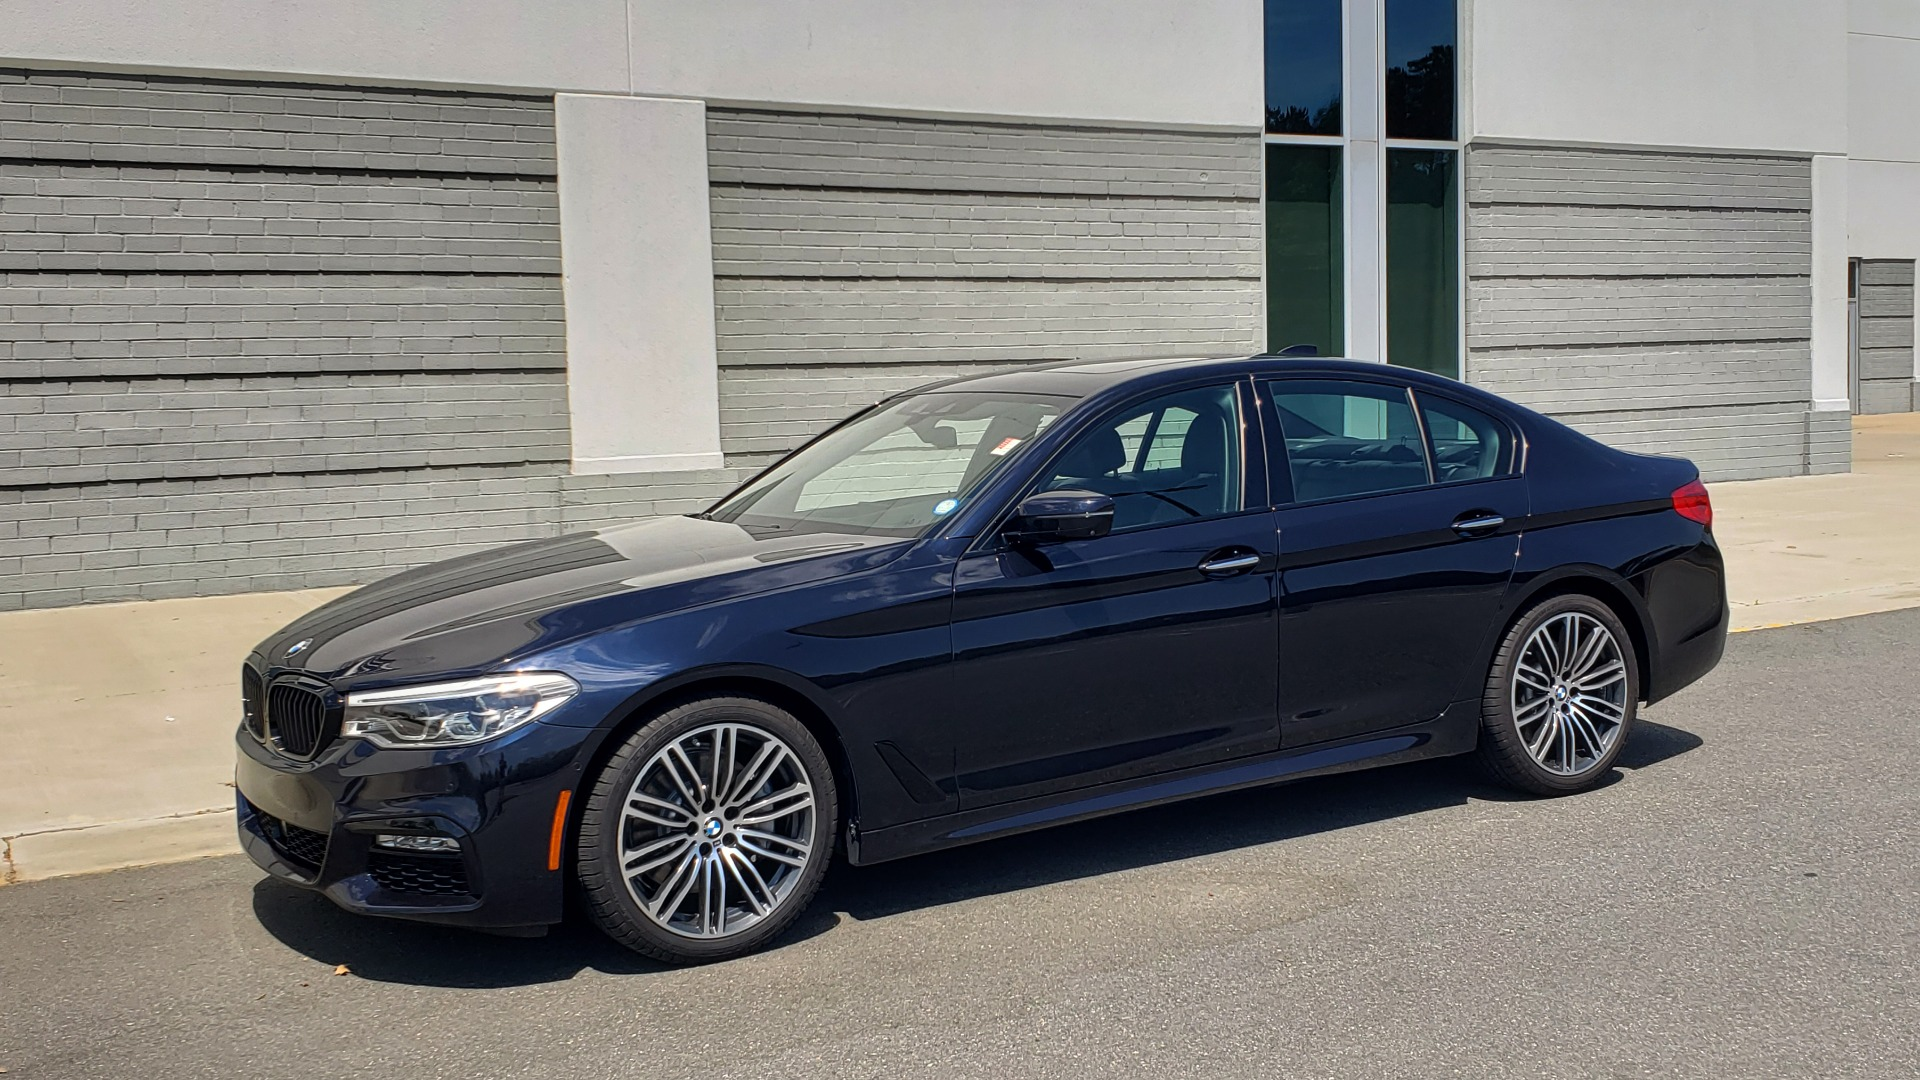 Used 2017 BMW 5 SERIES 540I XDRIVE M-SPORT / PREMIUM / DRVR ASST PLUS / CLD WTHR / LUXURY for sale Sold at Formula Imports in Charlotte NC 28227 6